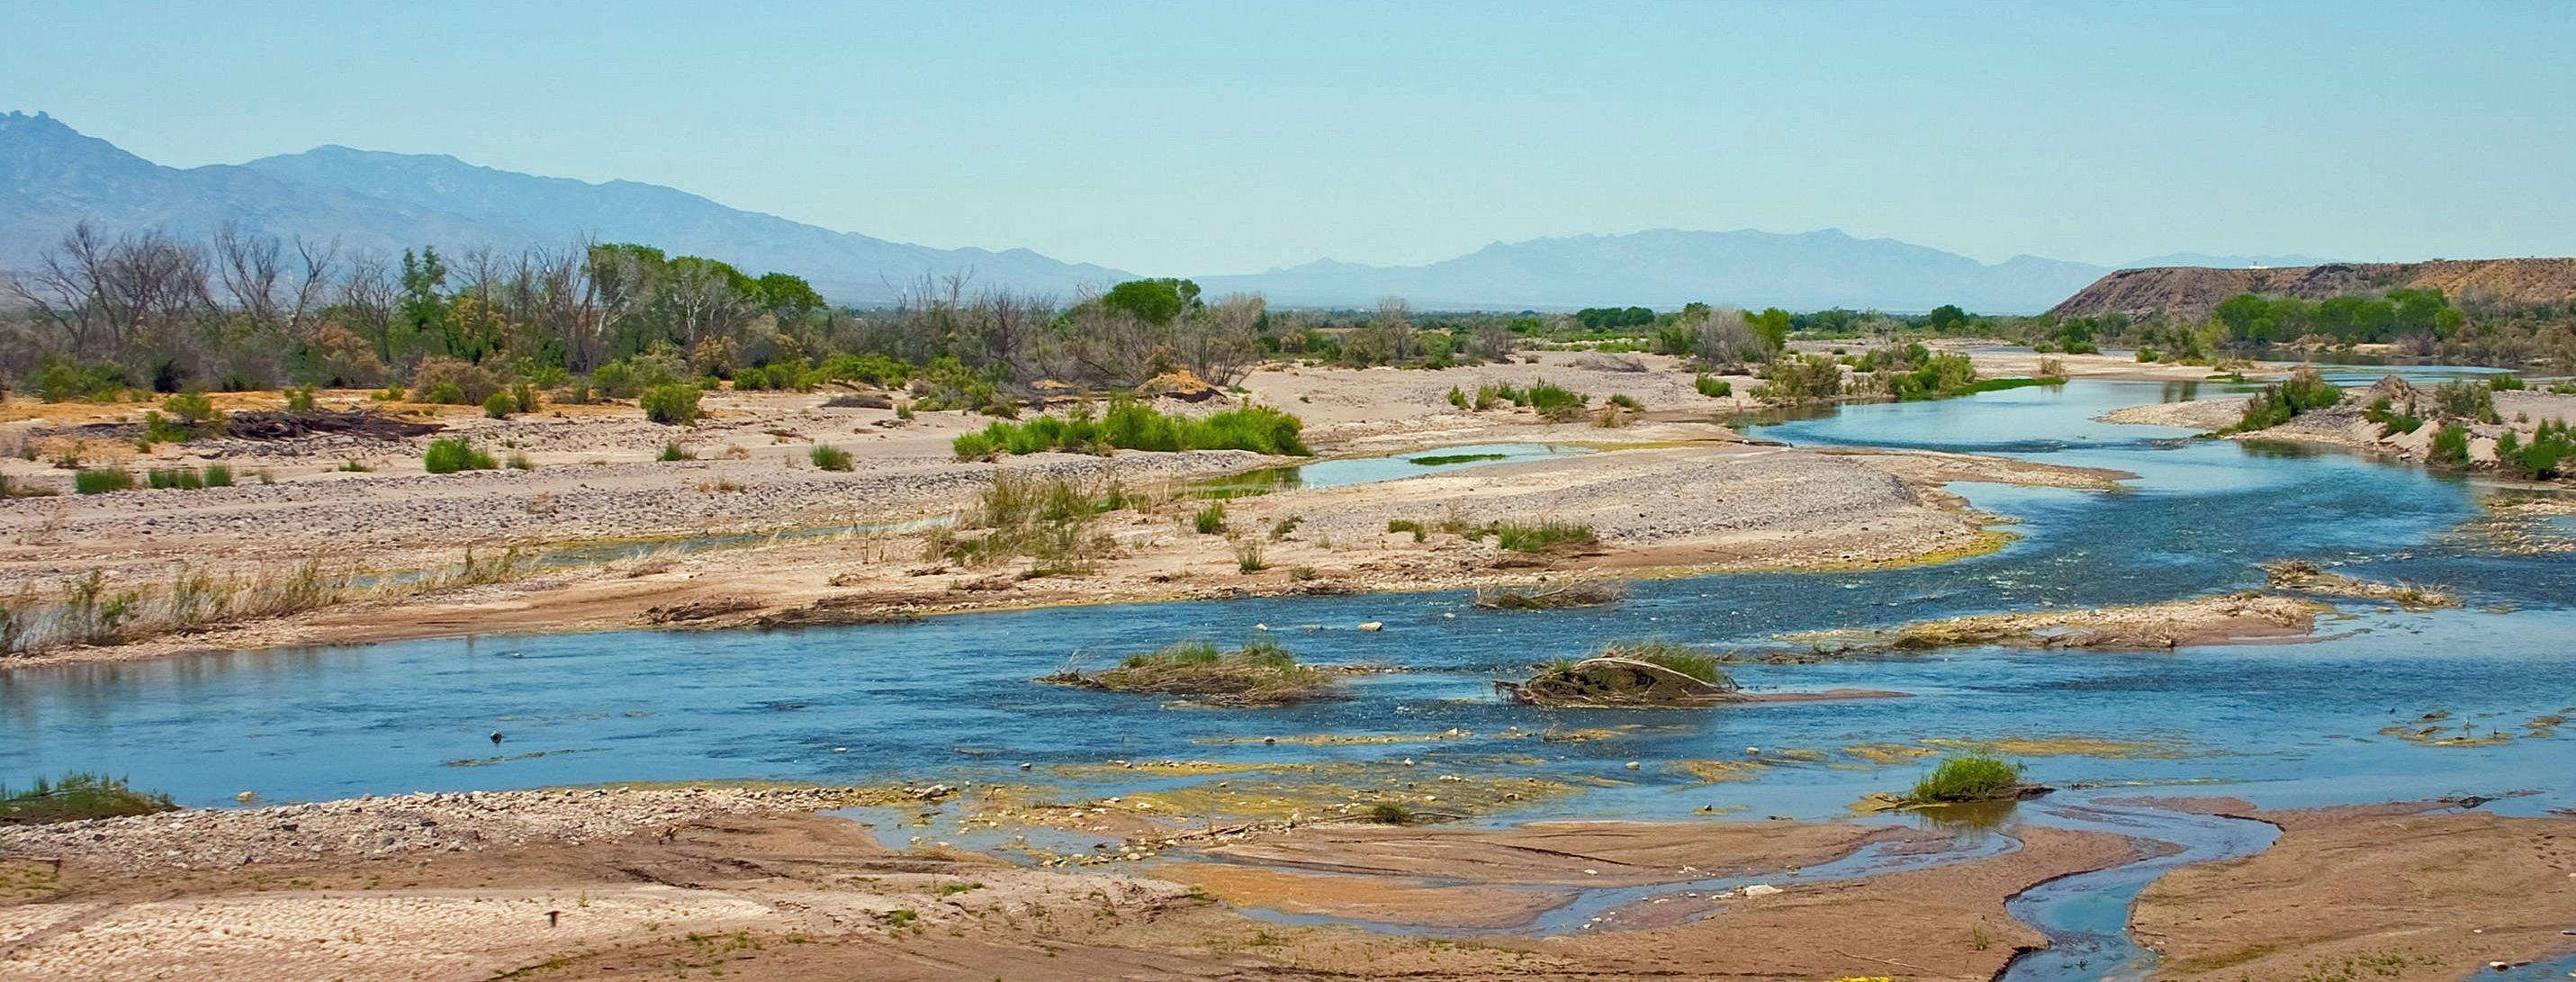 A sprawling view of the gila river and wild plantlife